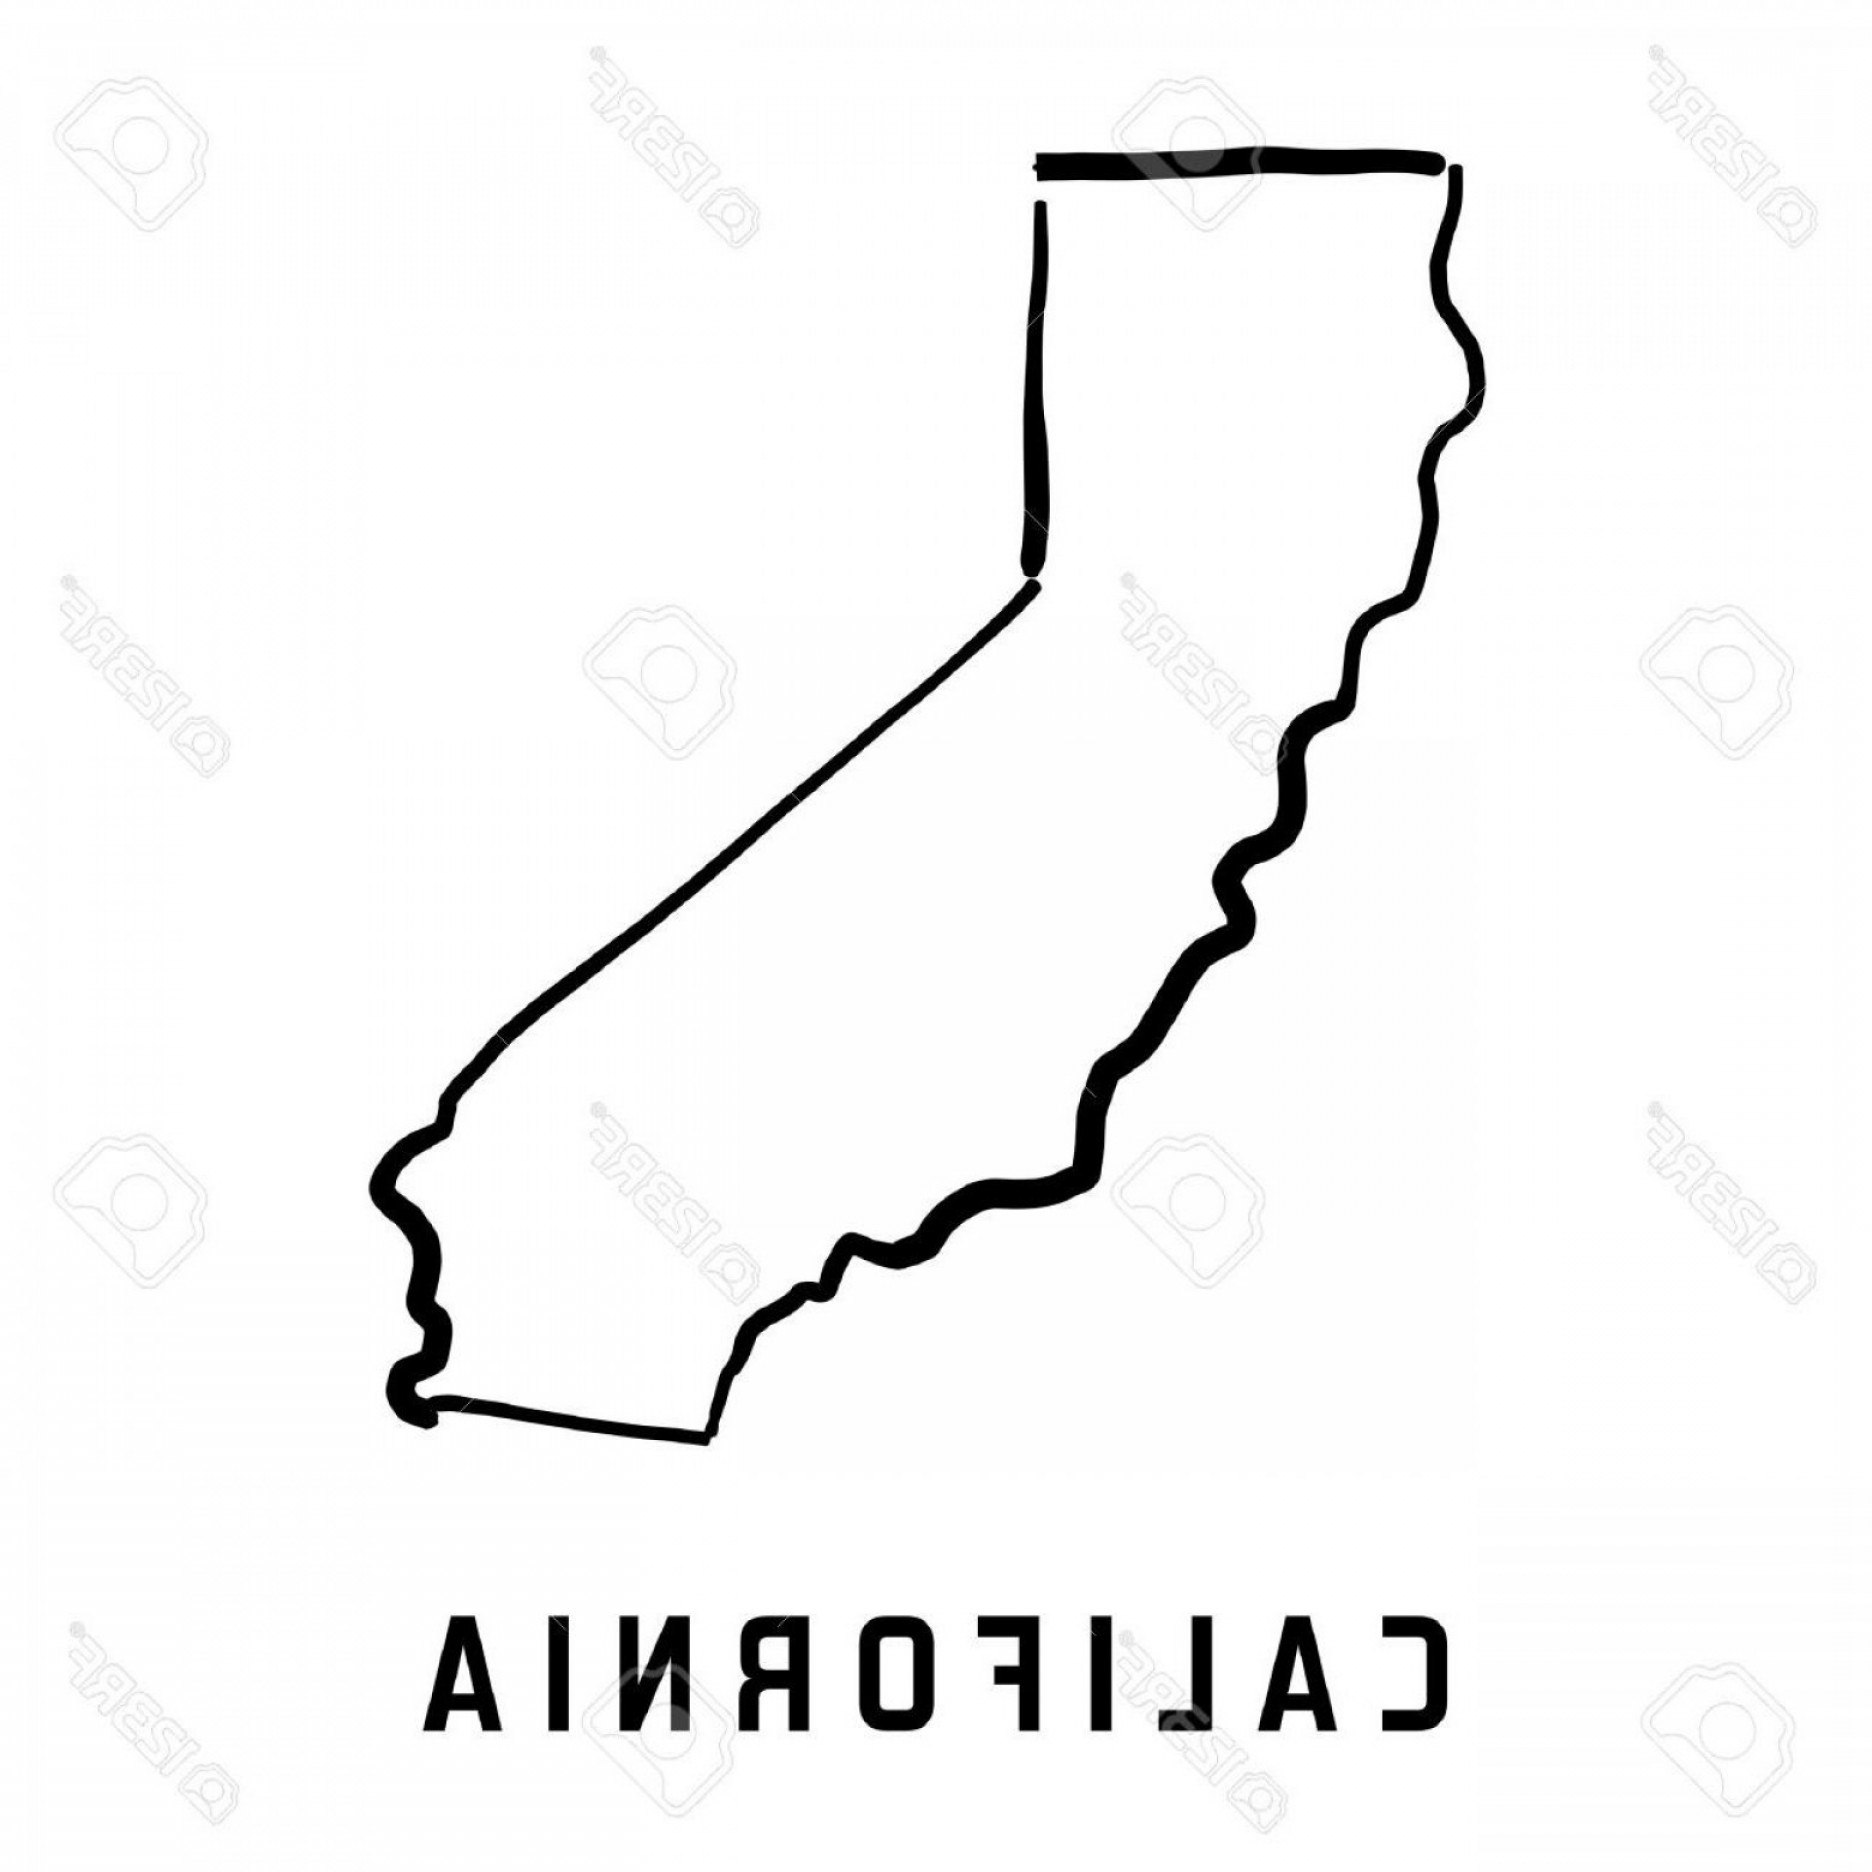 Arizona State Outline Vector: Hd California State Map Outline Smooth Simplified Us Shape Vector Image